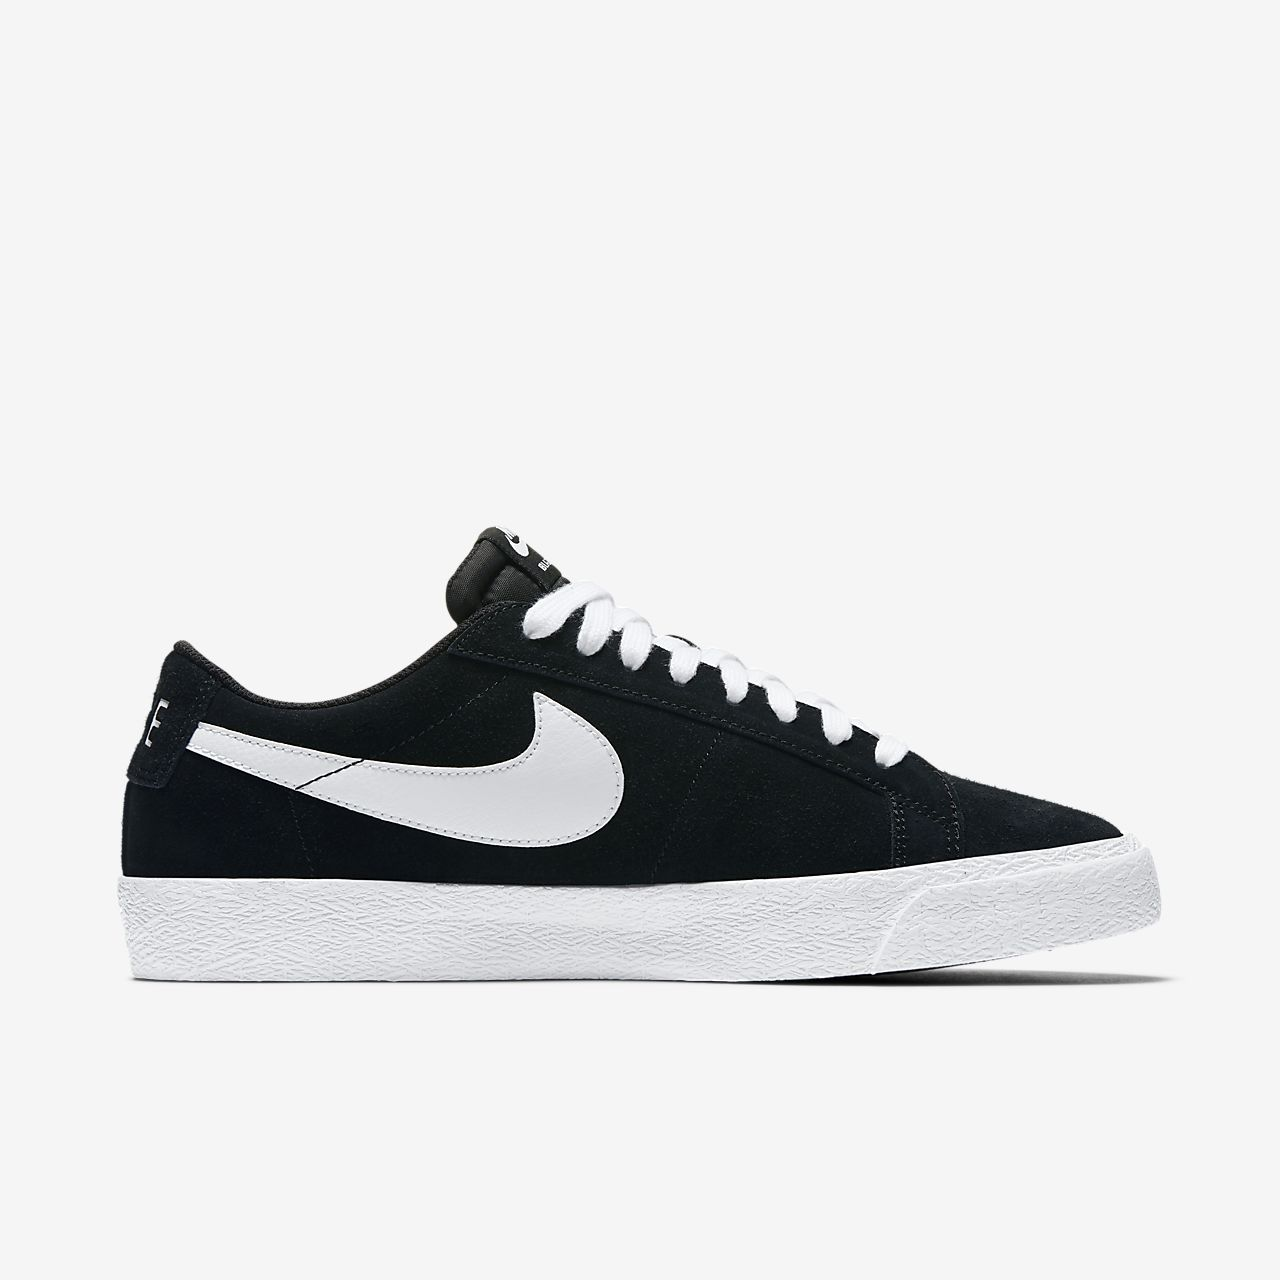 Nike SB Blazer Low Mens Skateboarding Shoe